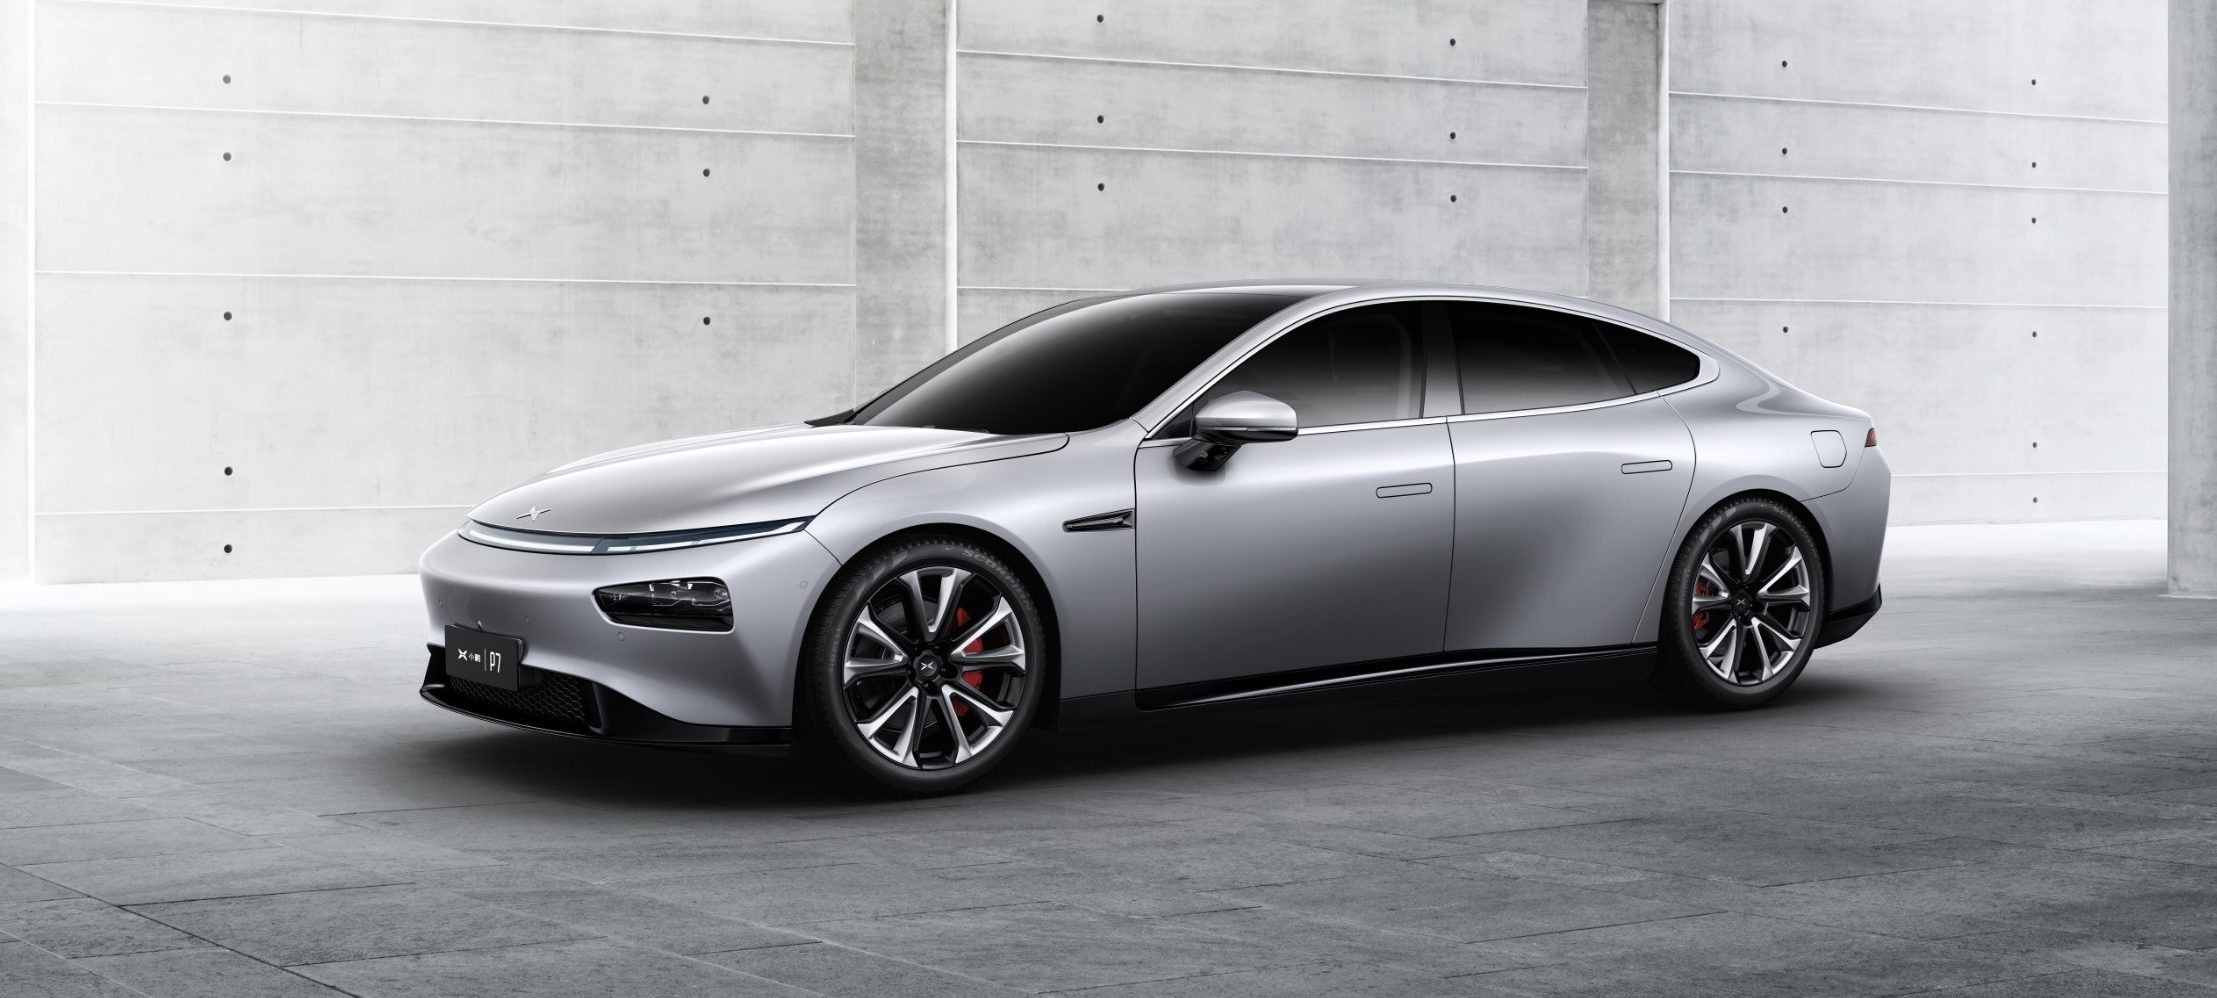 'Tesla-clone' Xpeng unveils new electric sedan with over 300 miles of range